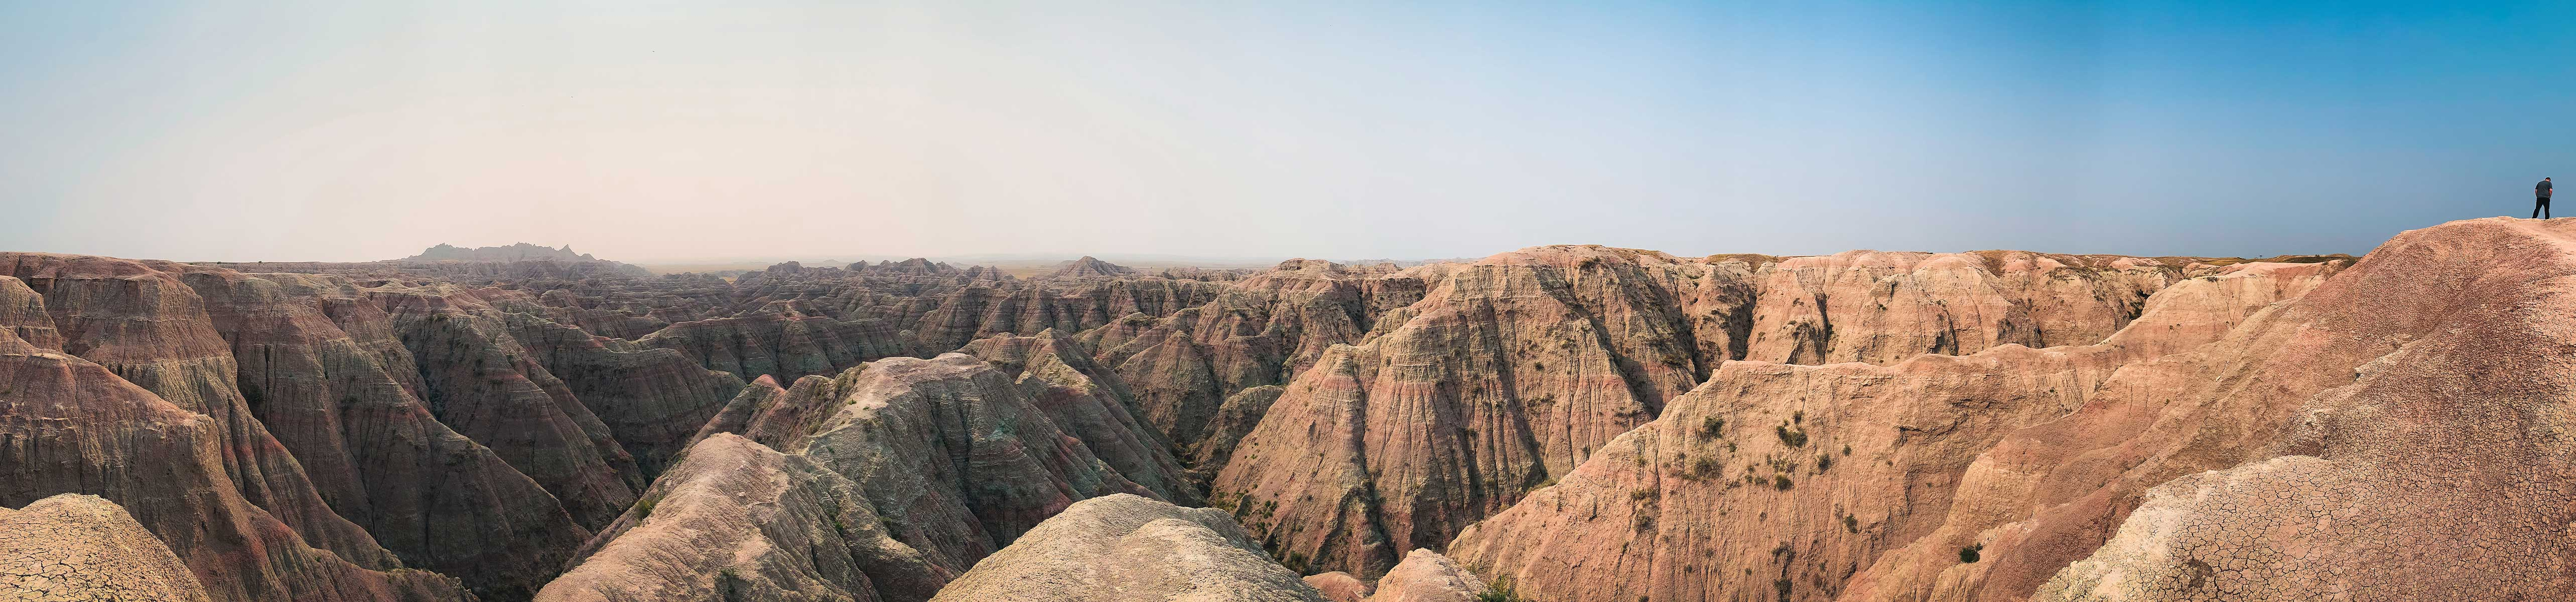 Panoramic of the Badlands